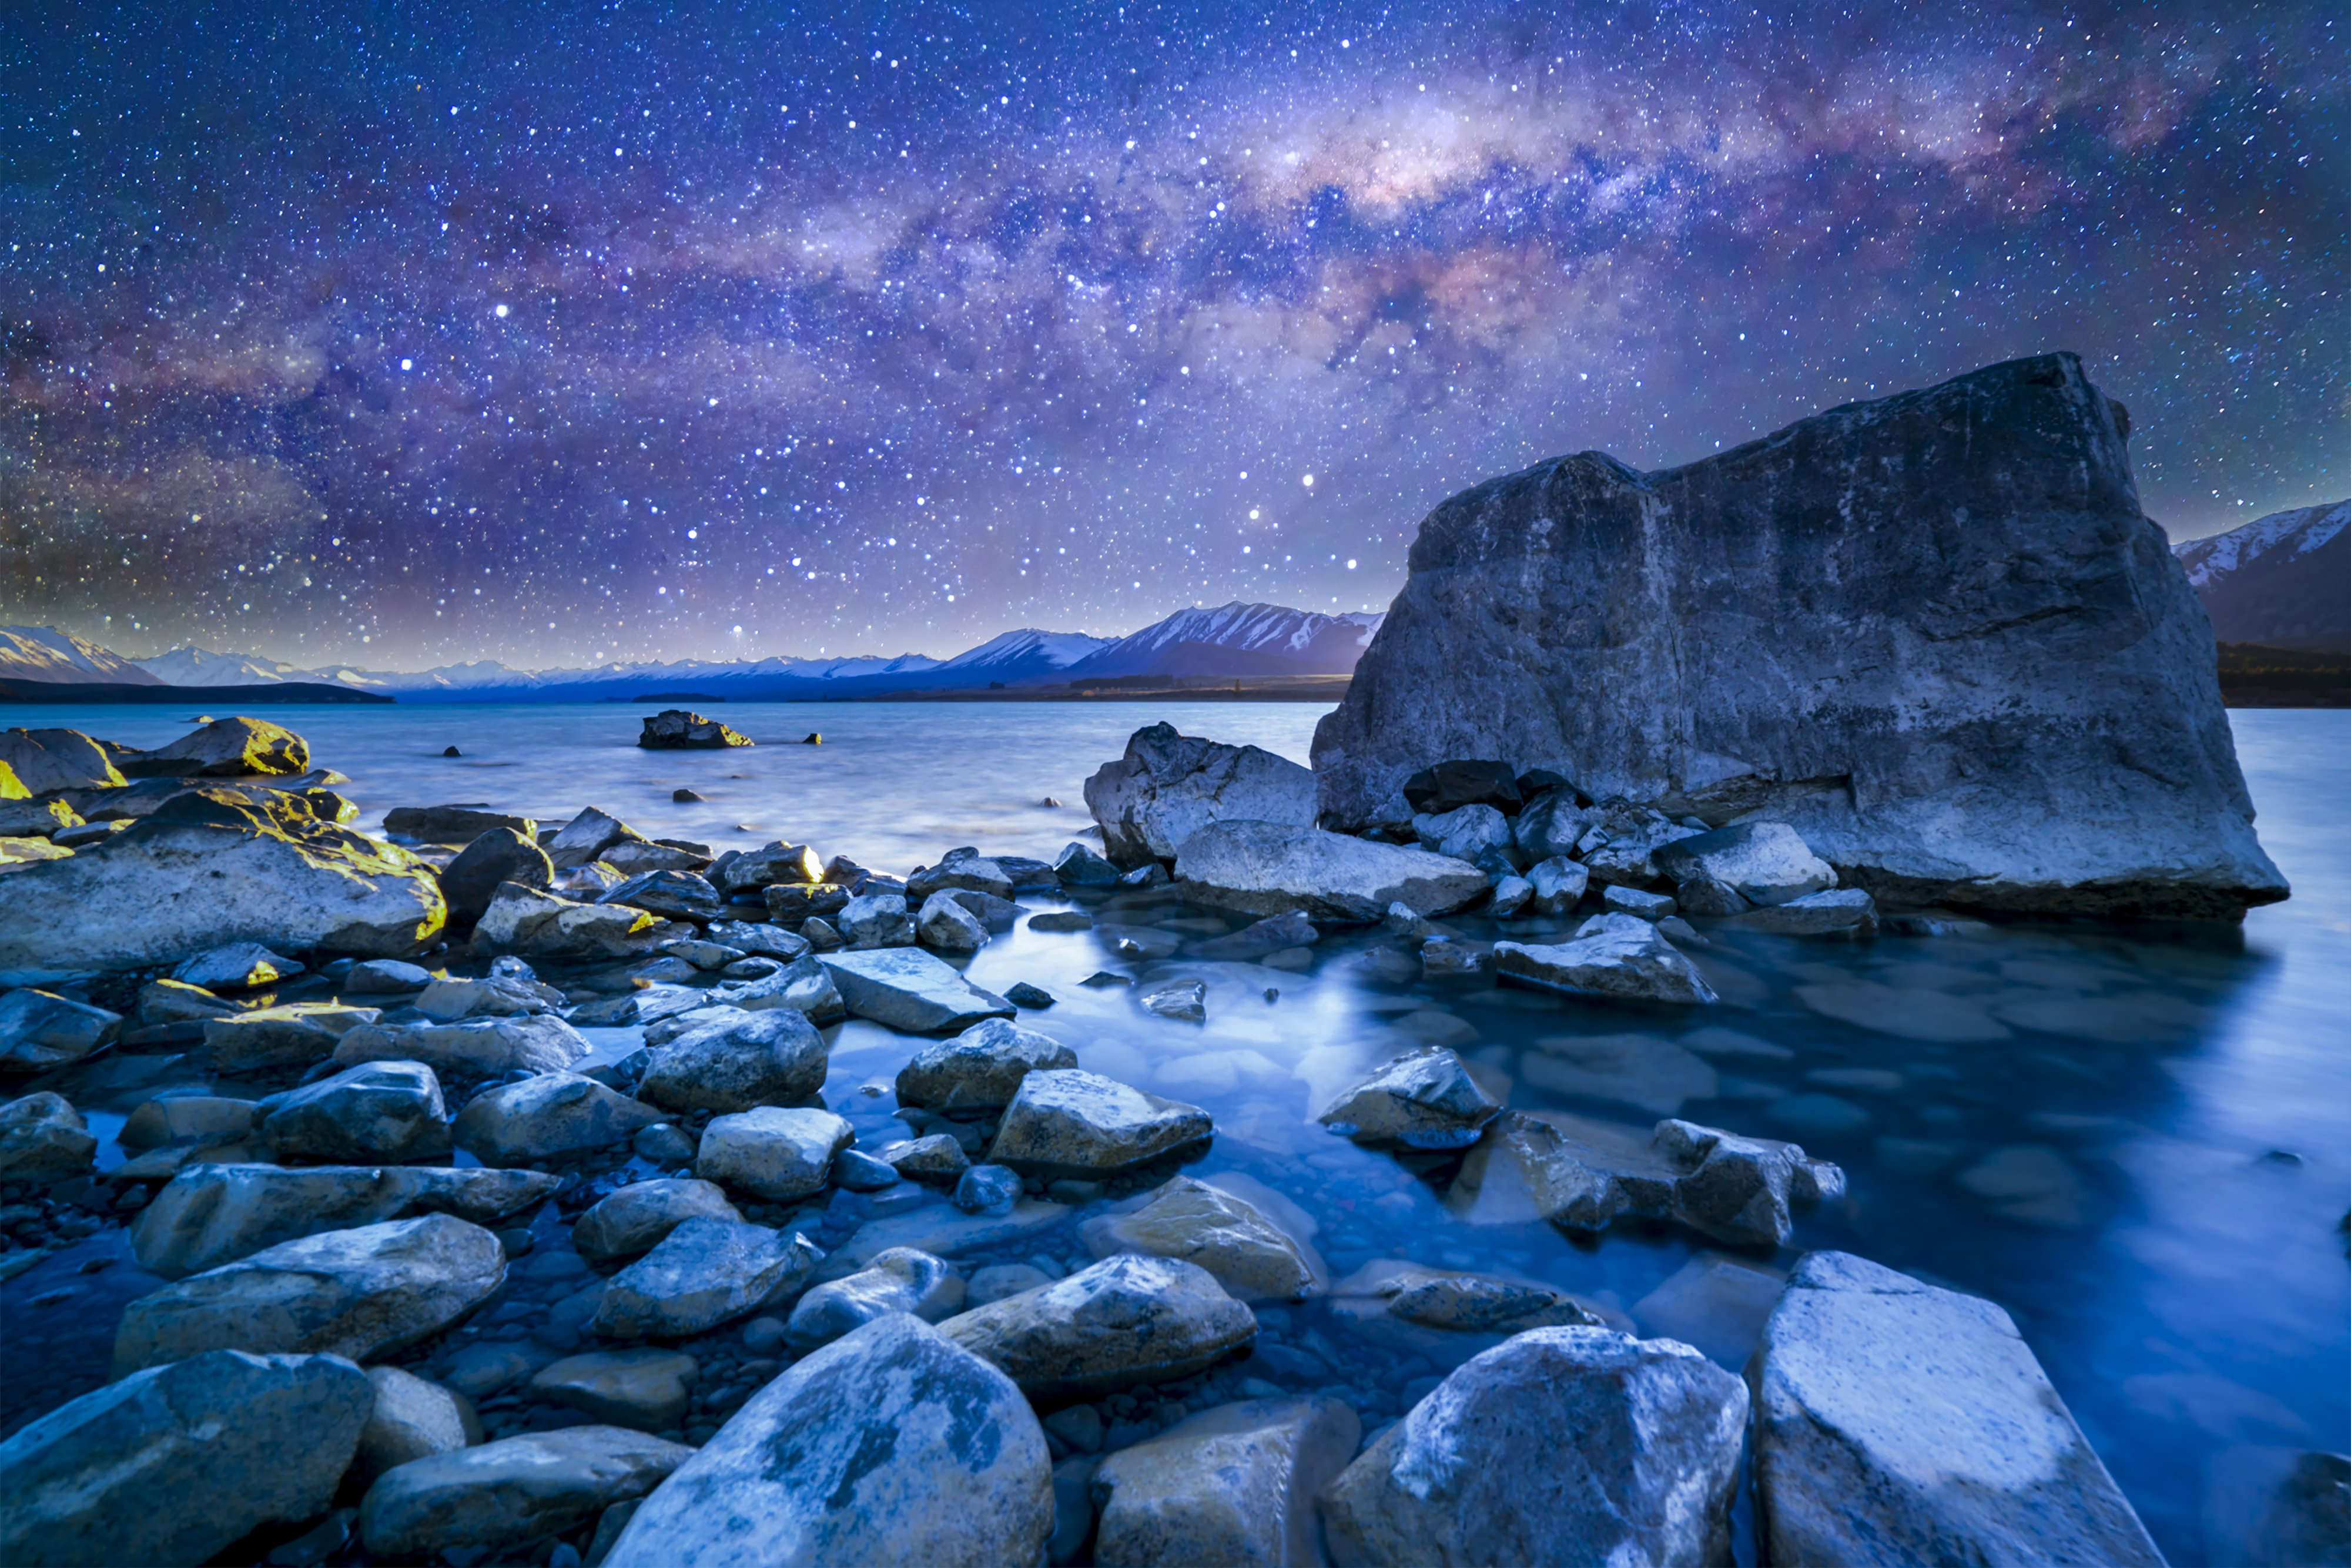 Tekapo Lake with milkyway in the background